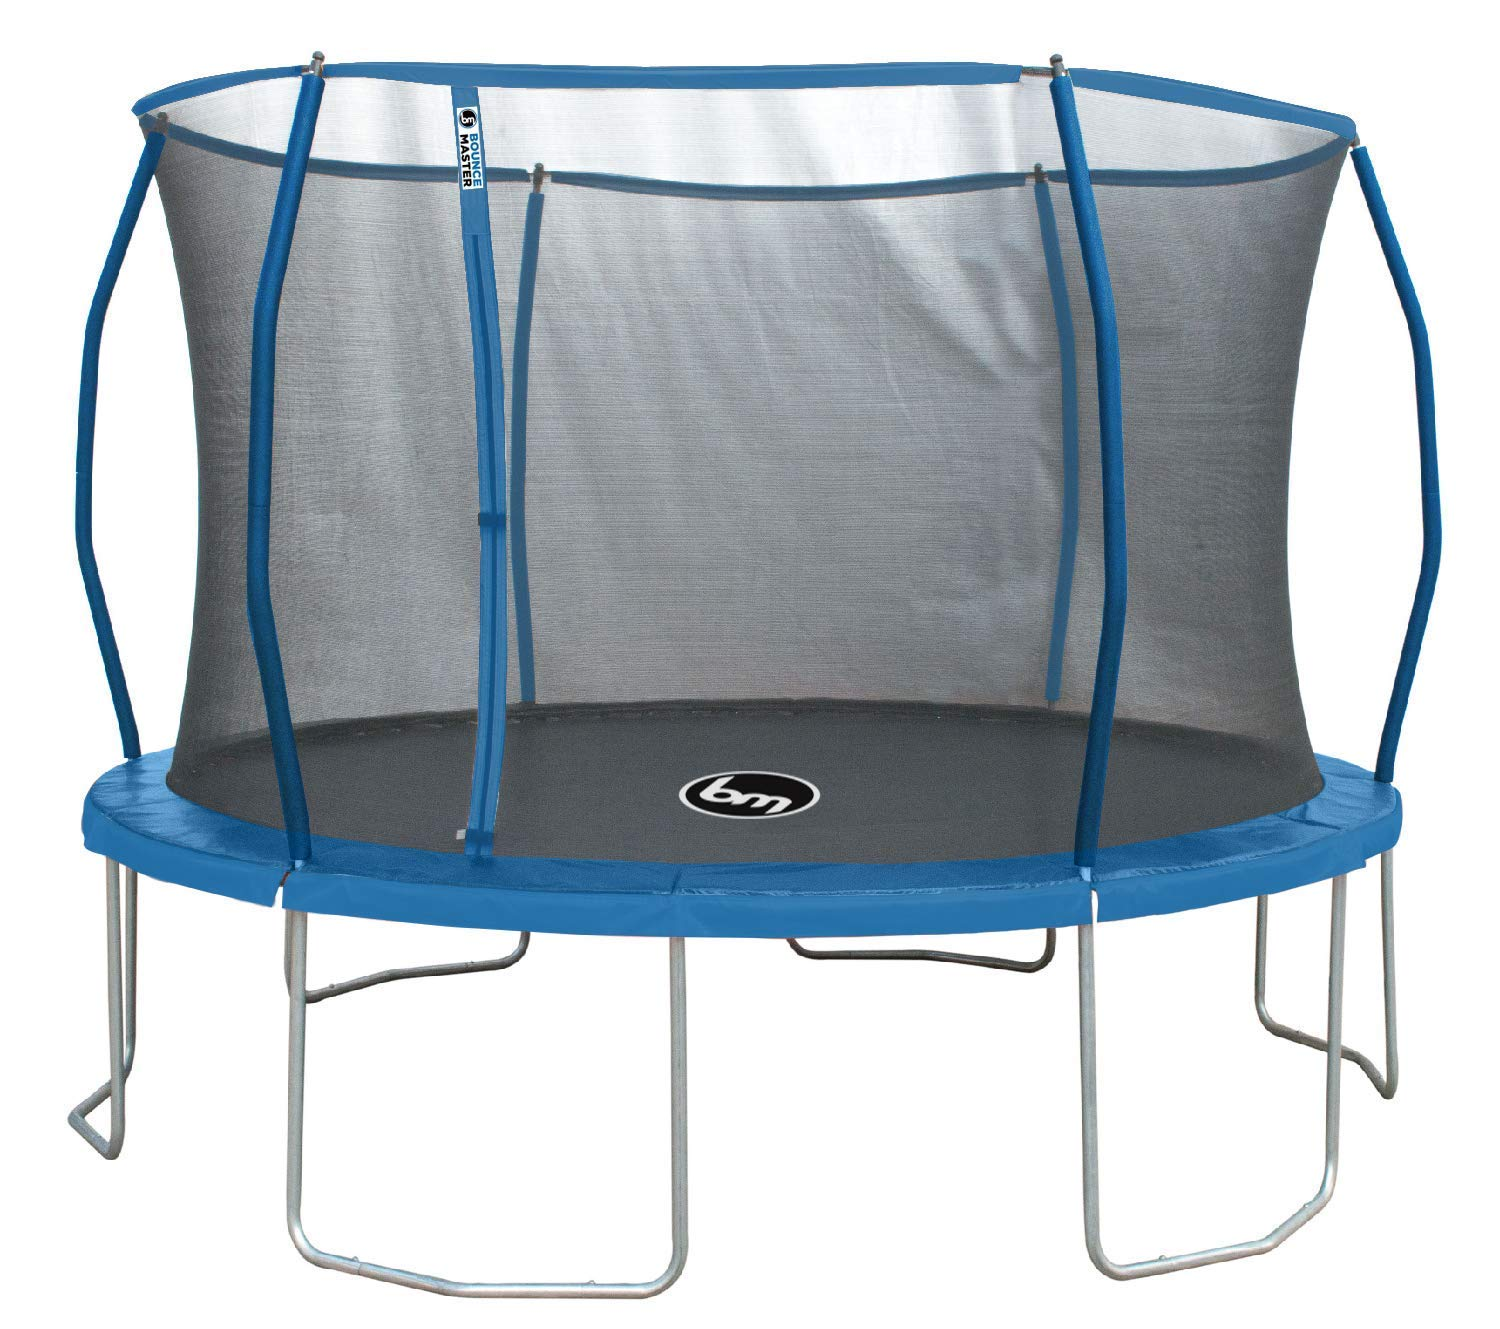 15' Replacement Trampoline Safety Net-ASTM Safety Approved